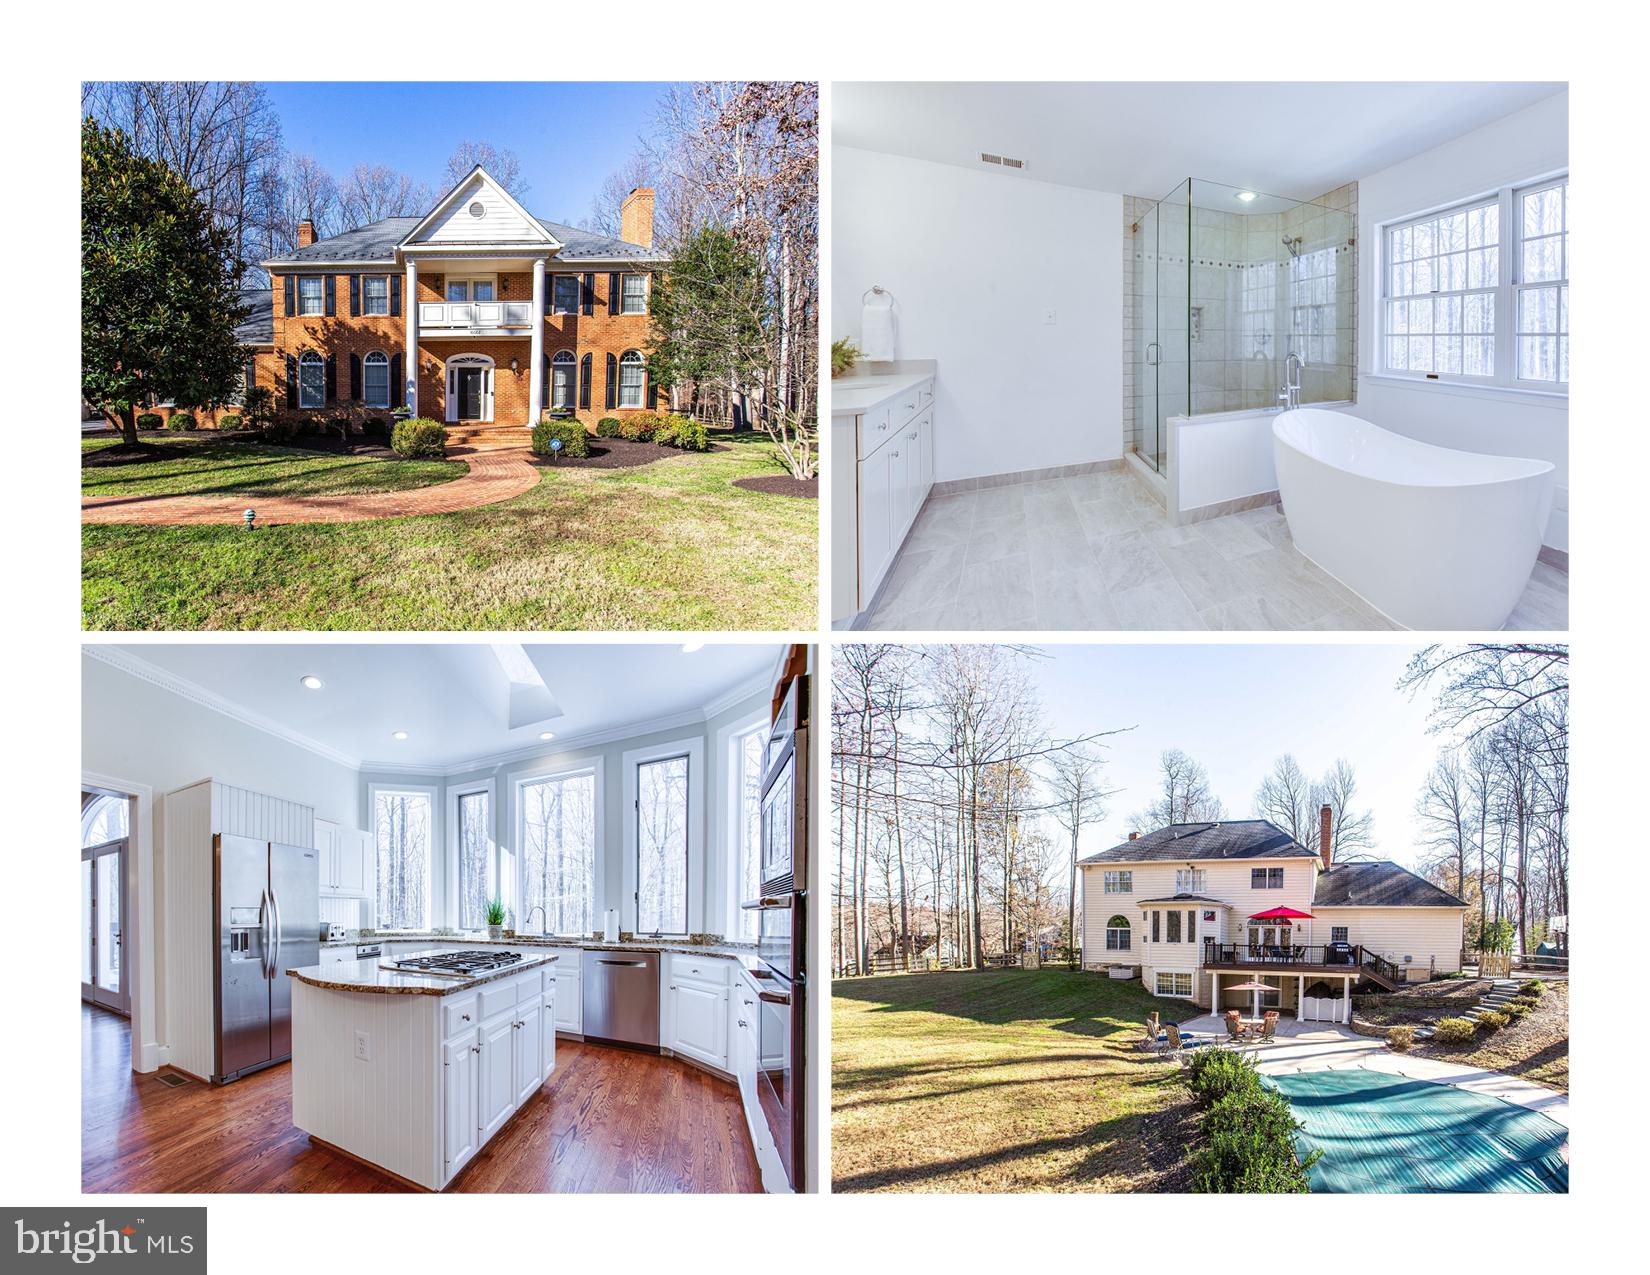 Down a quiet lane abutting a 230 acre nature preserve, this stately brick Colonia,l perfectly sited